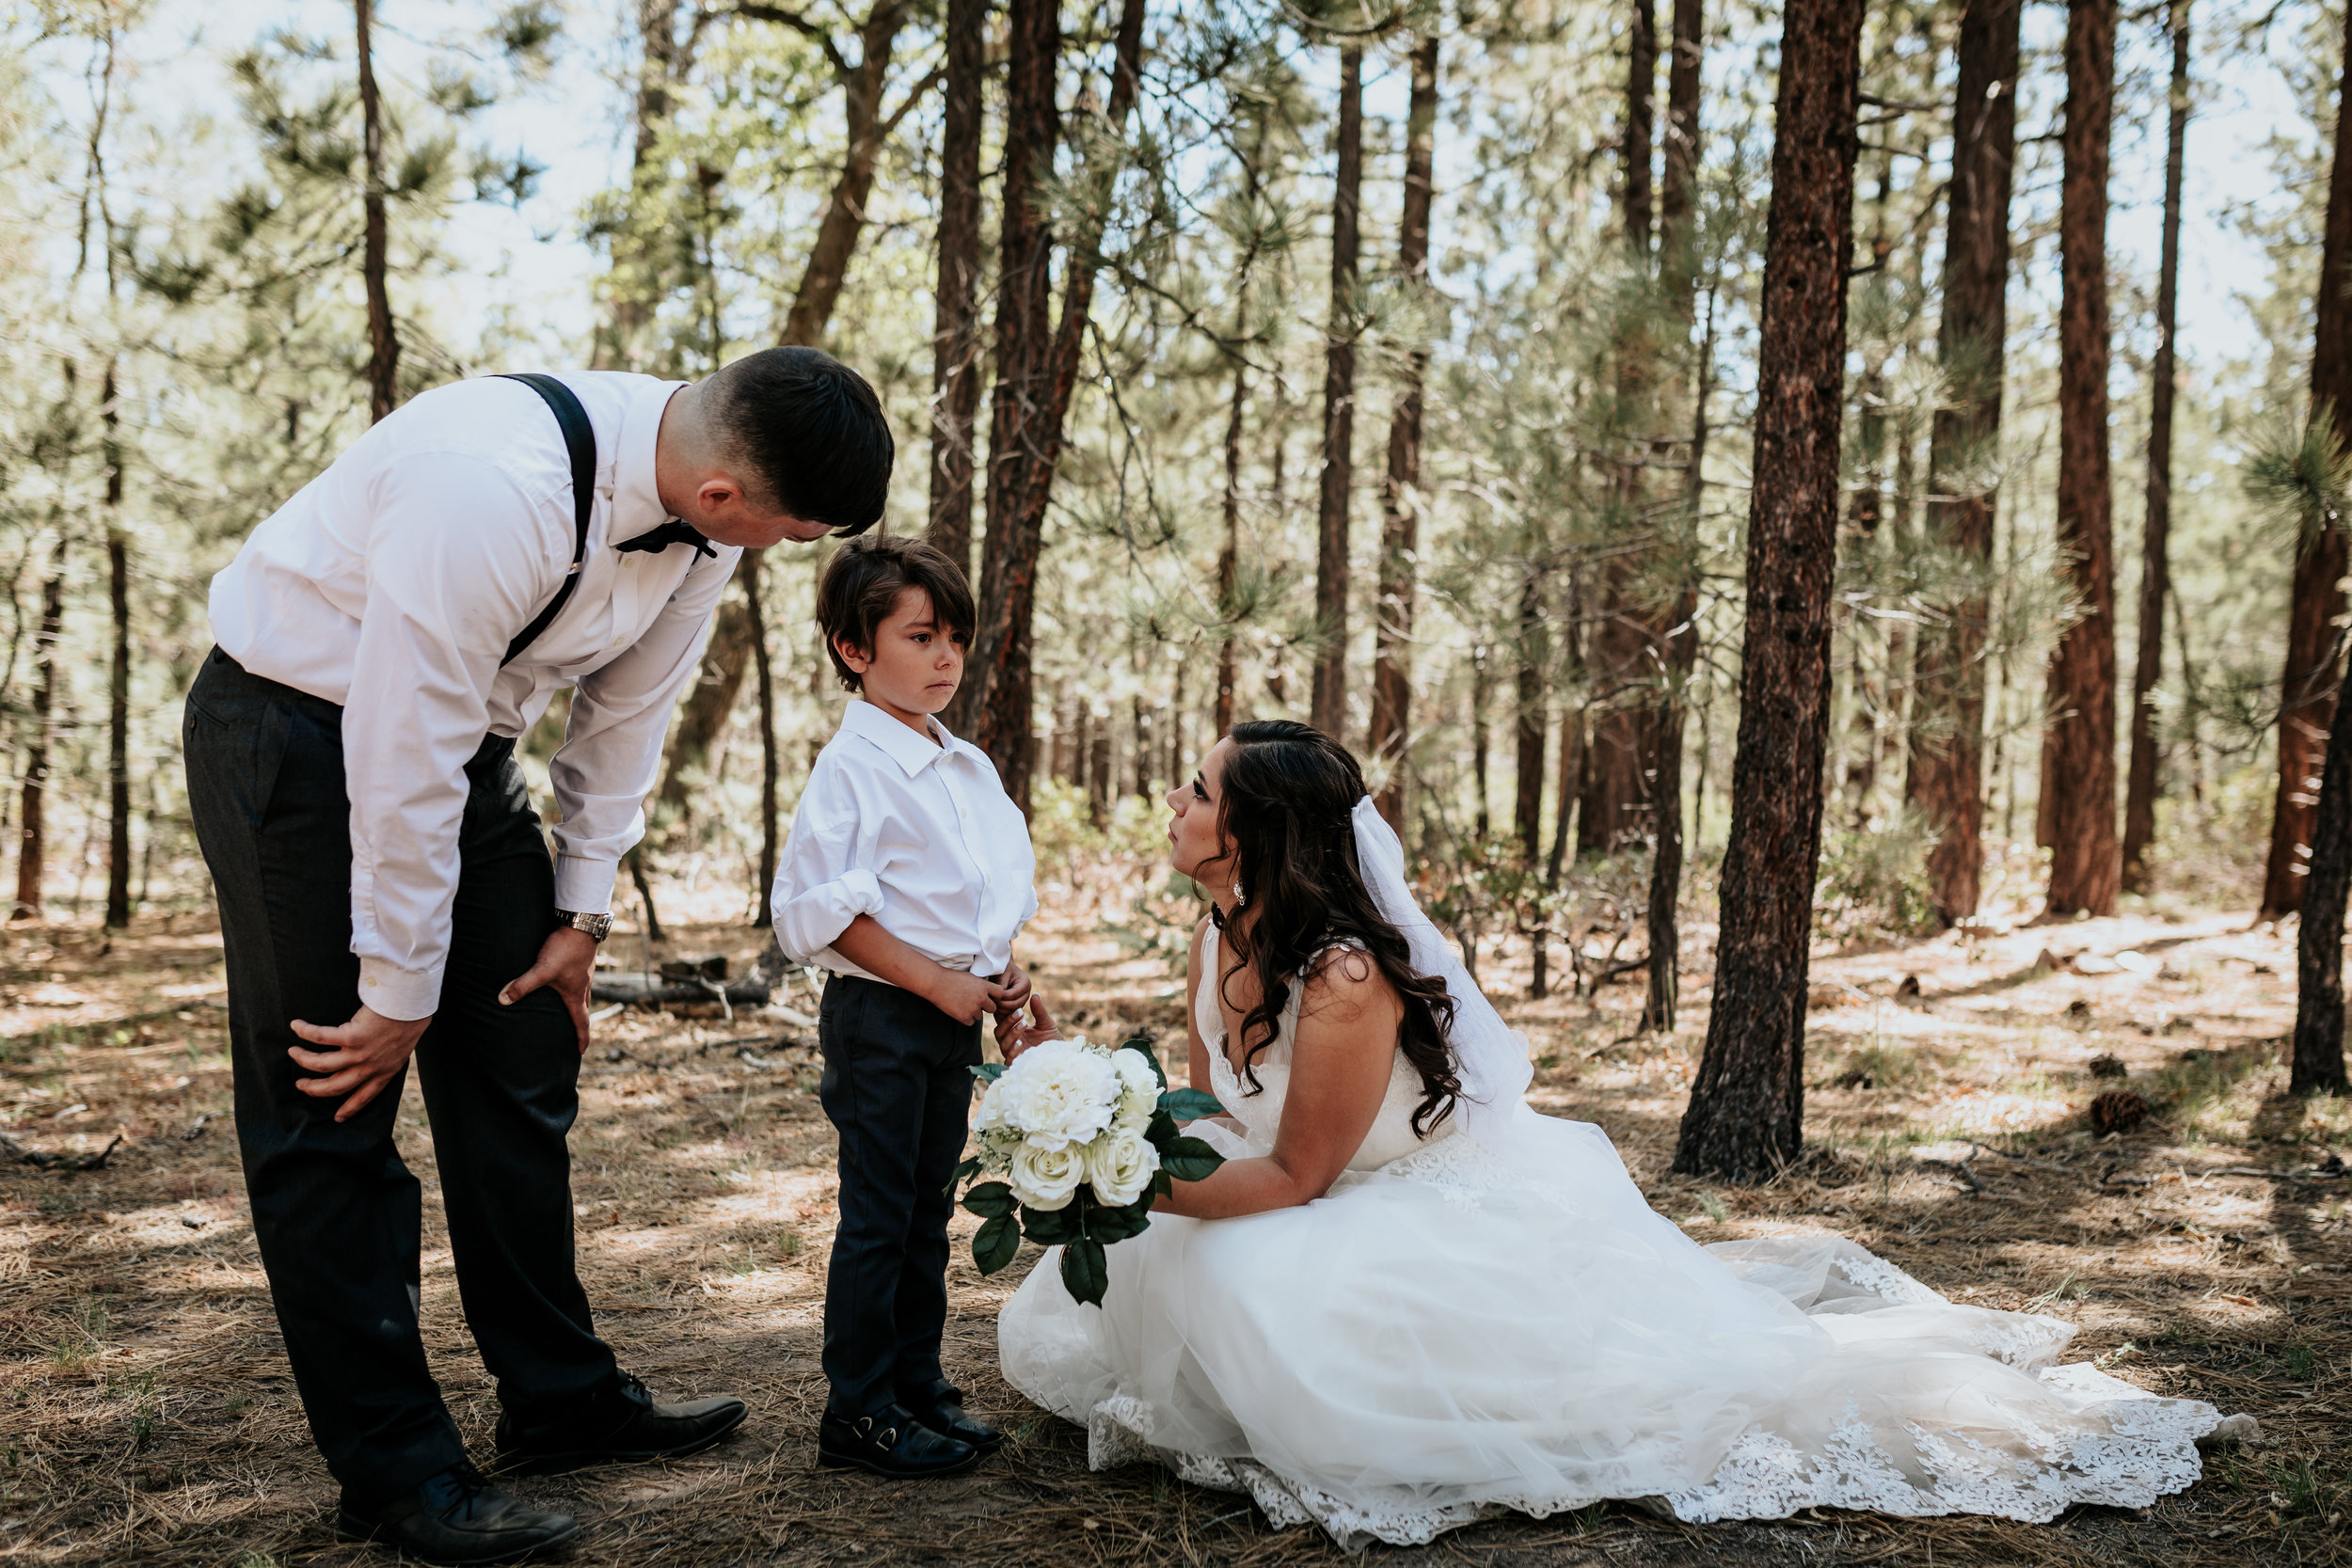 forest-wedding-big-bear-california-wedding-photographer (2).jpg